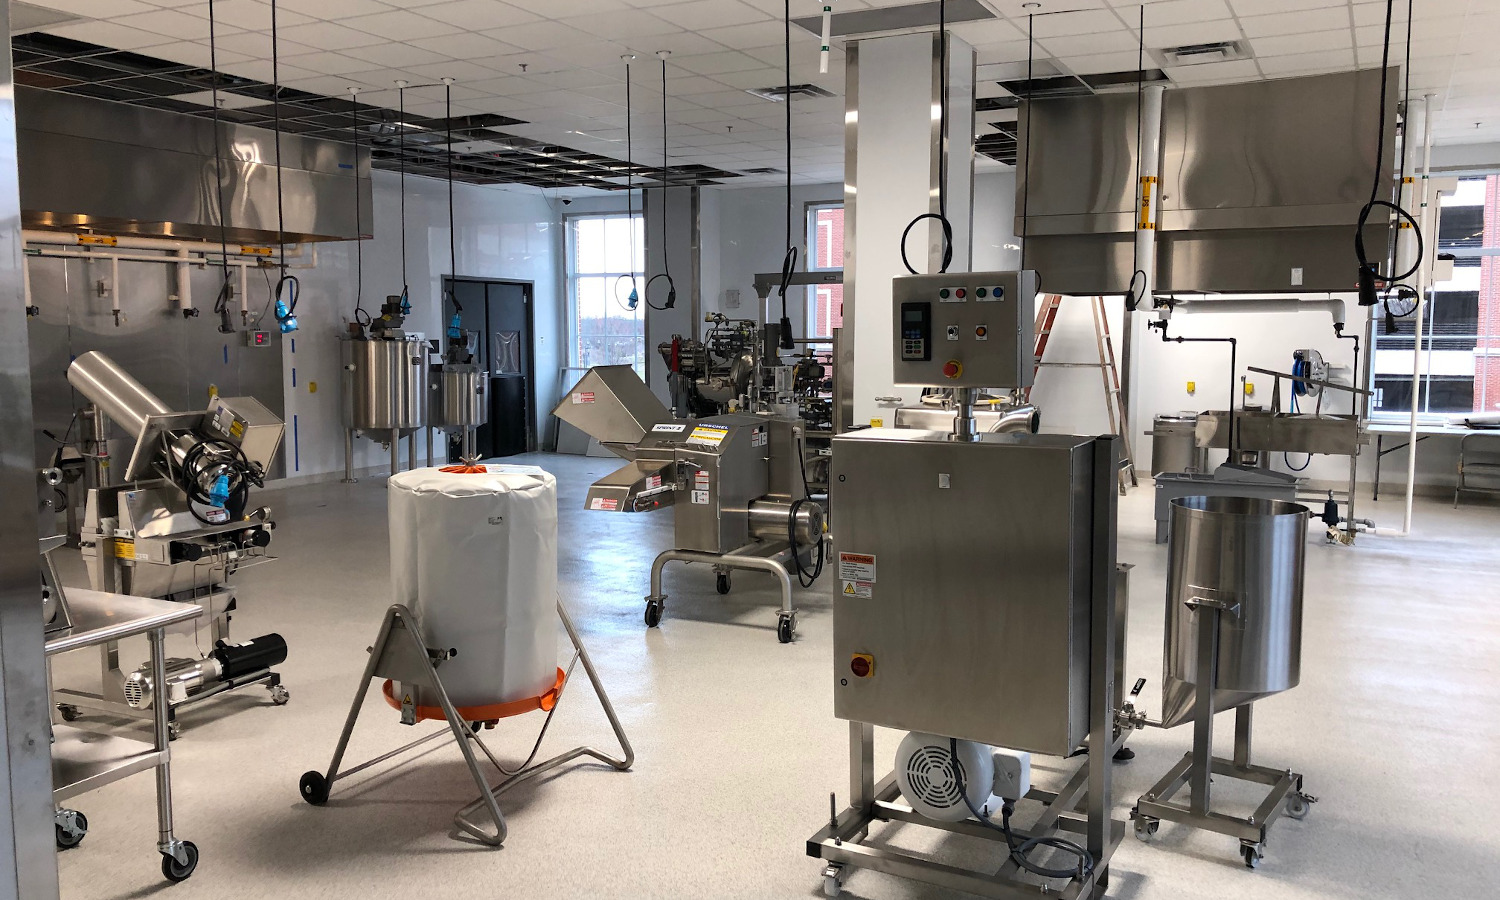 New lab opens in North Carolina to help entrepreneurs grow plant-based food businesses by providing ideation, development, and marketing services